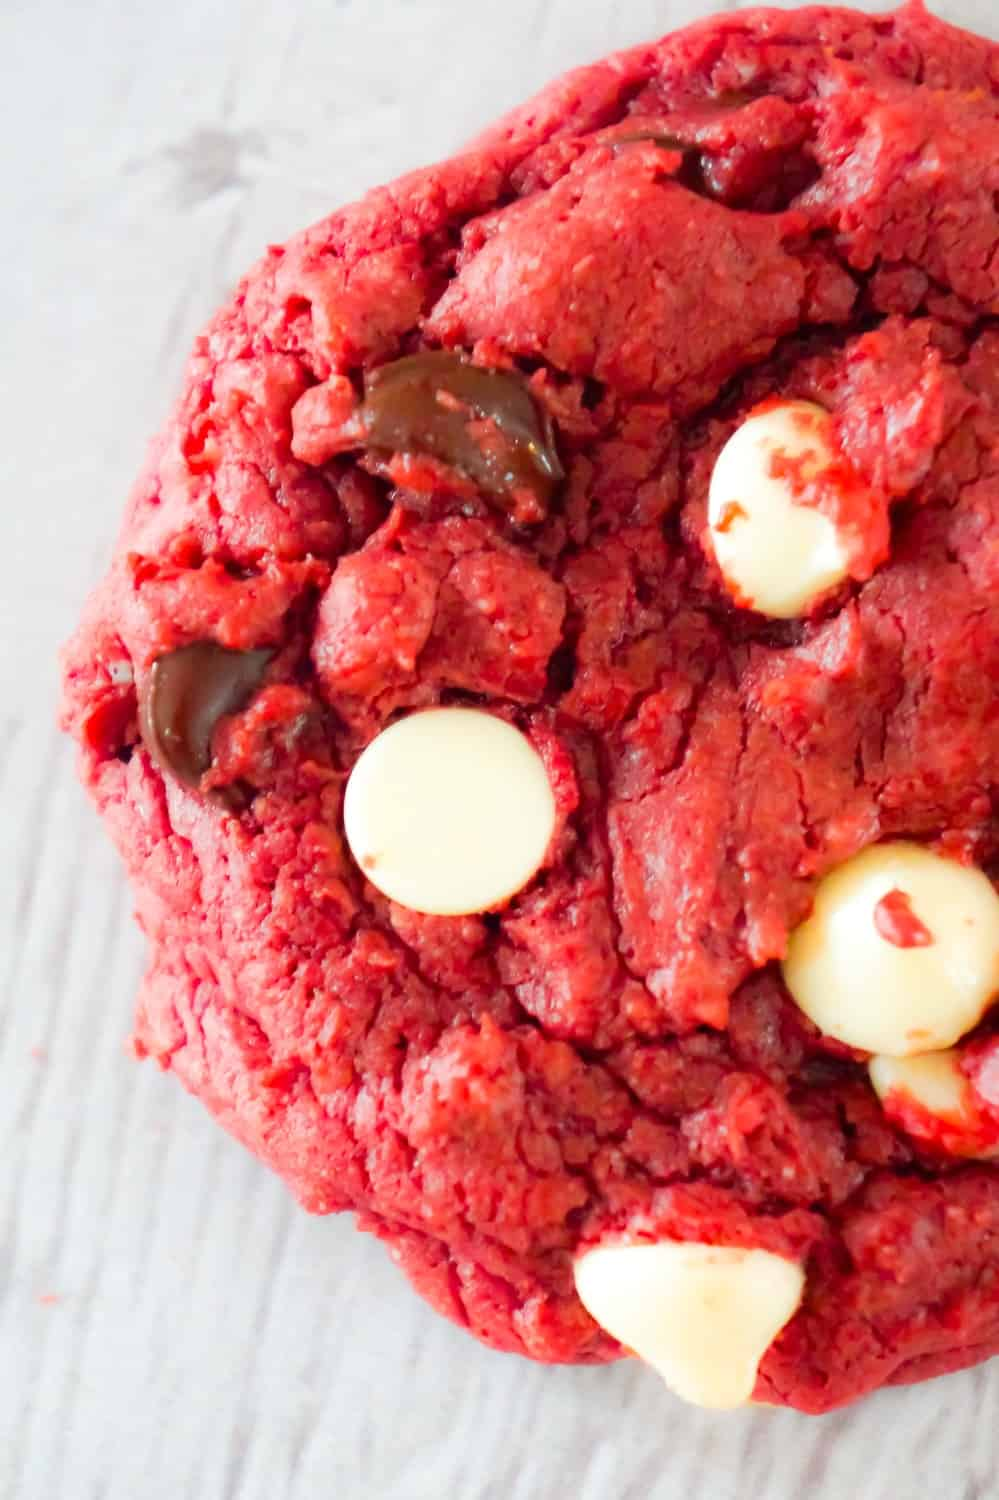 Red Velvet Cake Mix Cookies are an easy dessert recipe perfect for Valentine's day. These chewy red velvet cookies are loaded with semi-sweet and white chocolate chips.